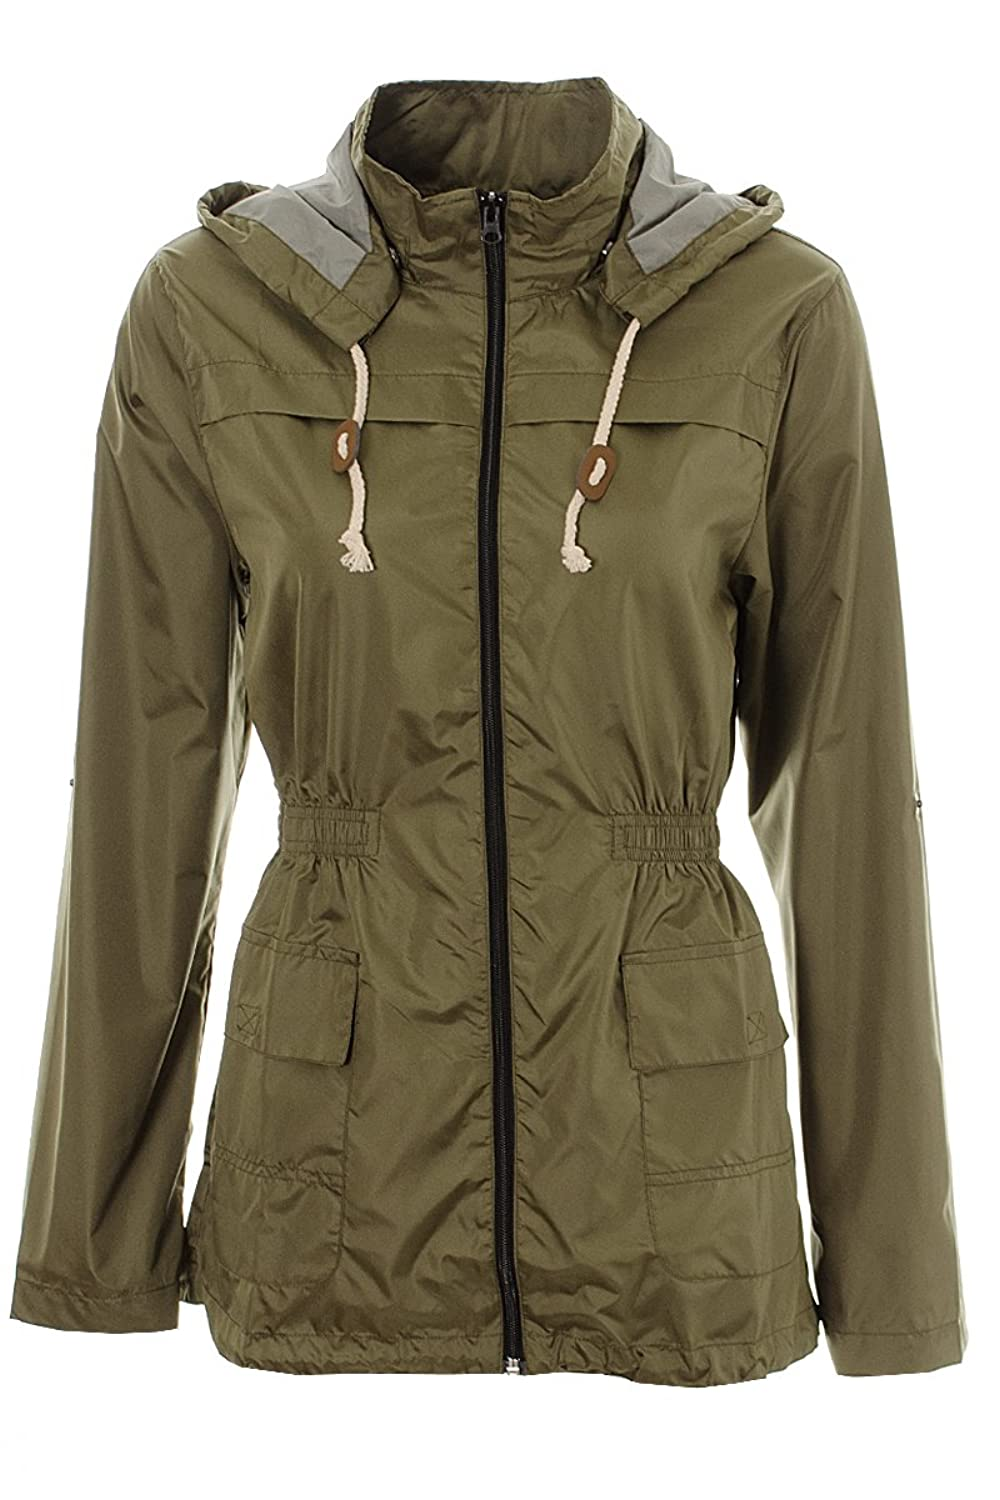 Womens Lightweight Rain Mac Coat Fishtail Khaki Navy Ladies ...